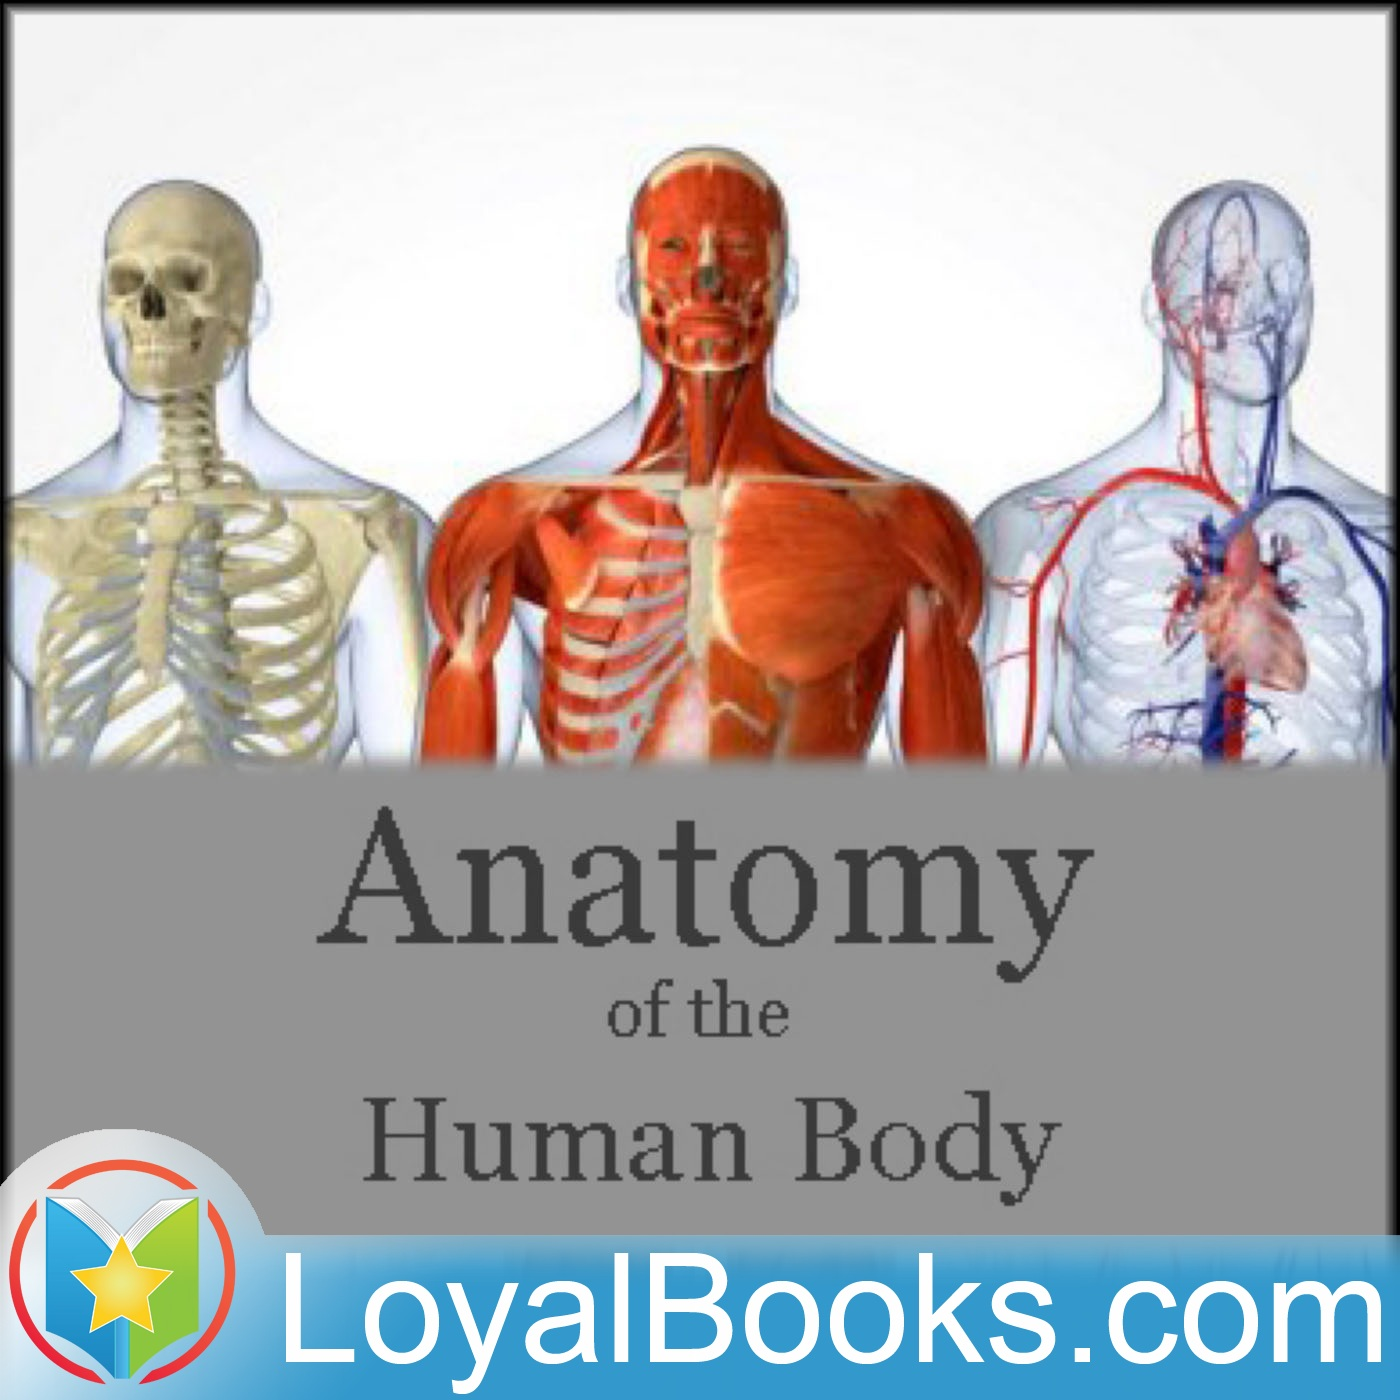 Anatomy of the human